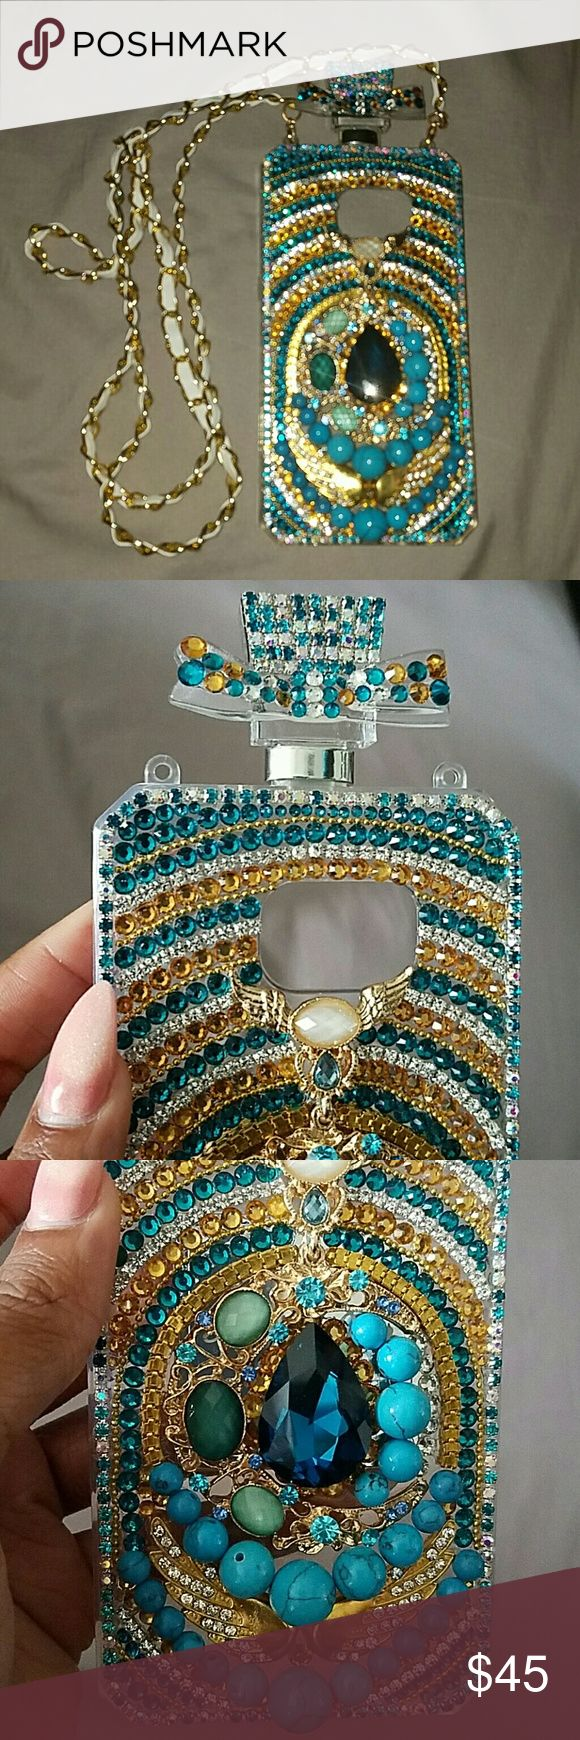 Bohemian bling phone case Samsung galaxy s7 Bohemian jeweled perfume bottle case with white and gold strap, compatible with Samsung Galaxy S7 Tmobile Samsung   Accessories Phone Cases